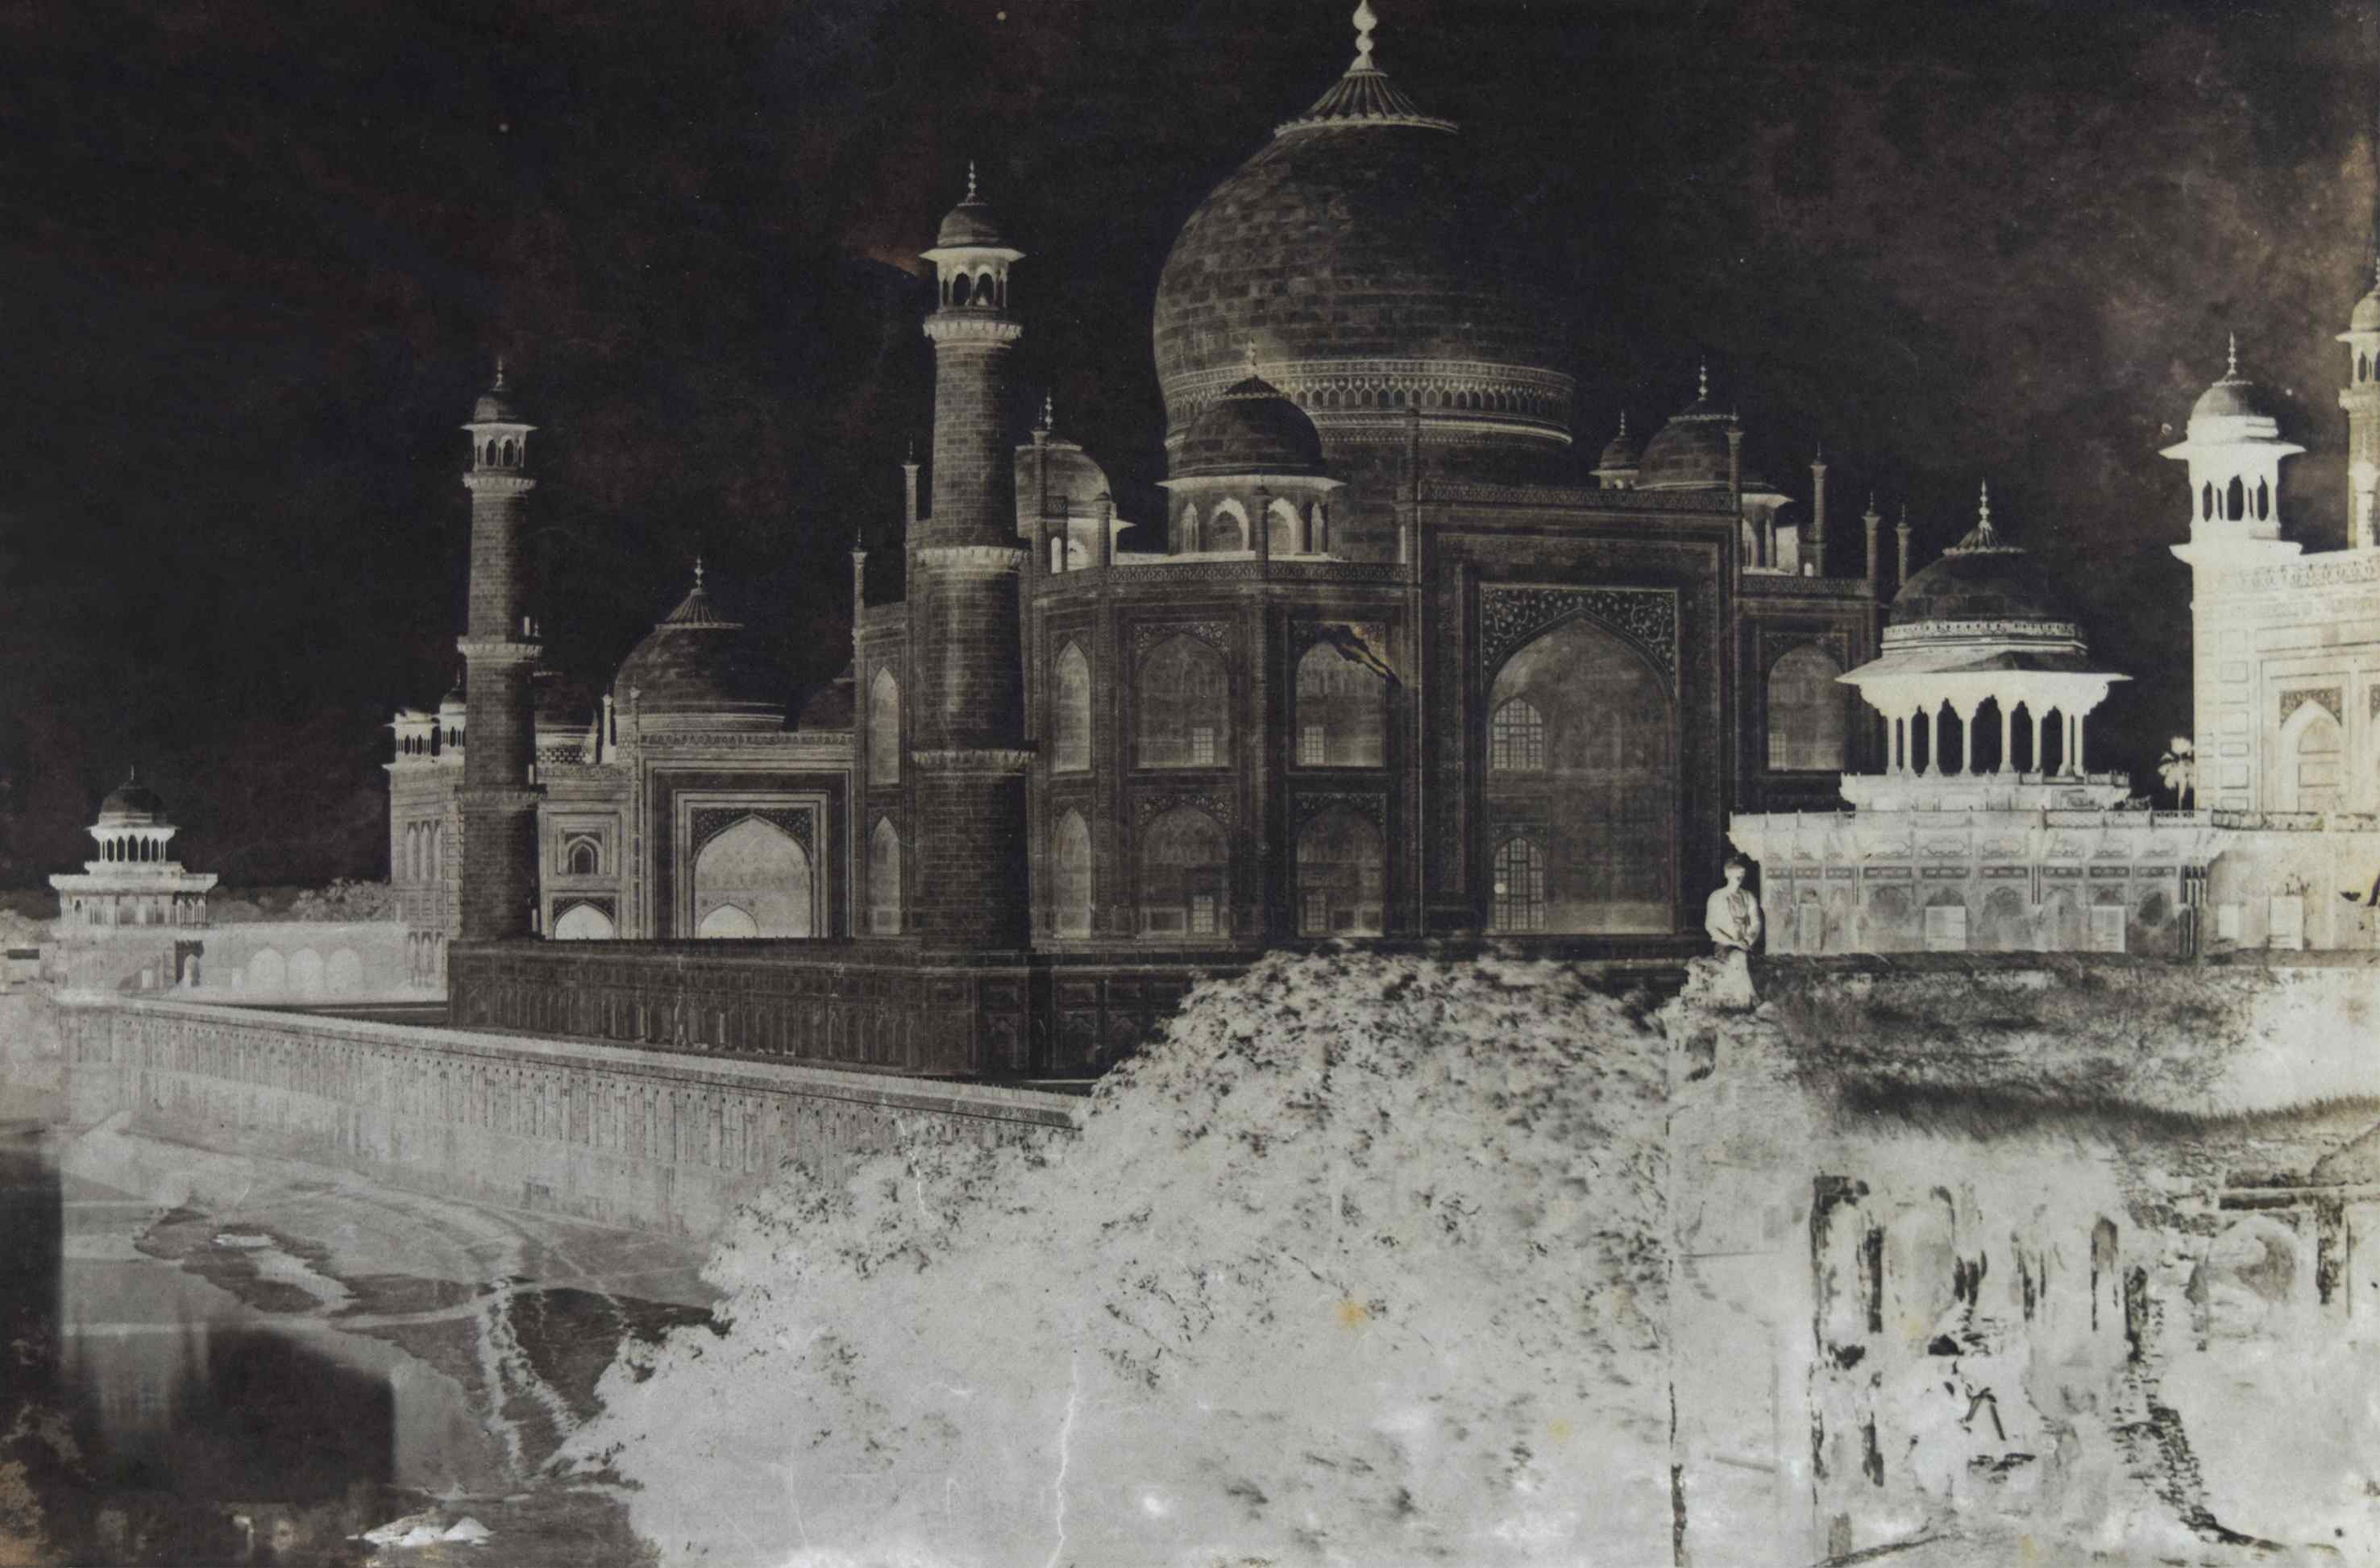 Dr John Murray - 'The Taj Mahal from the East', Agra, India, early 1860s, waxed paper negative